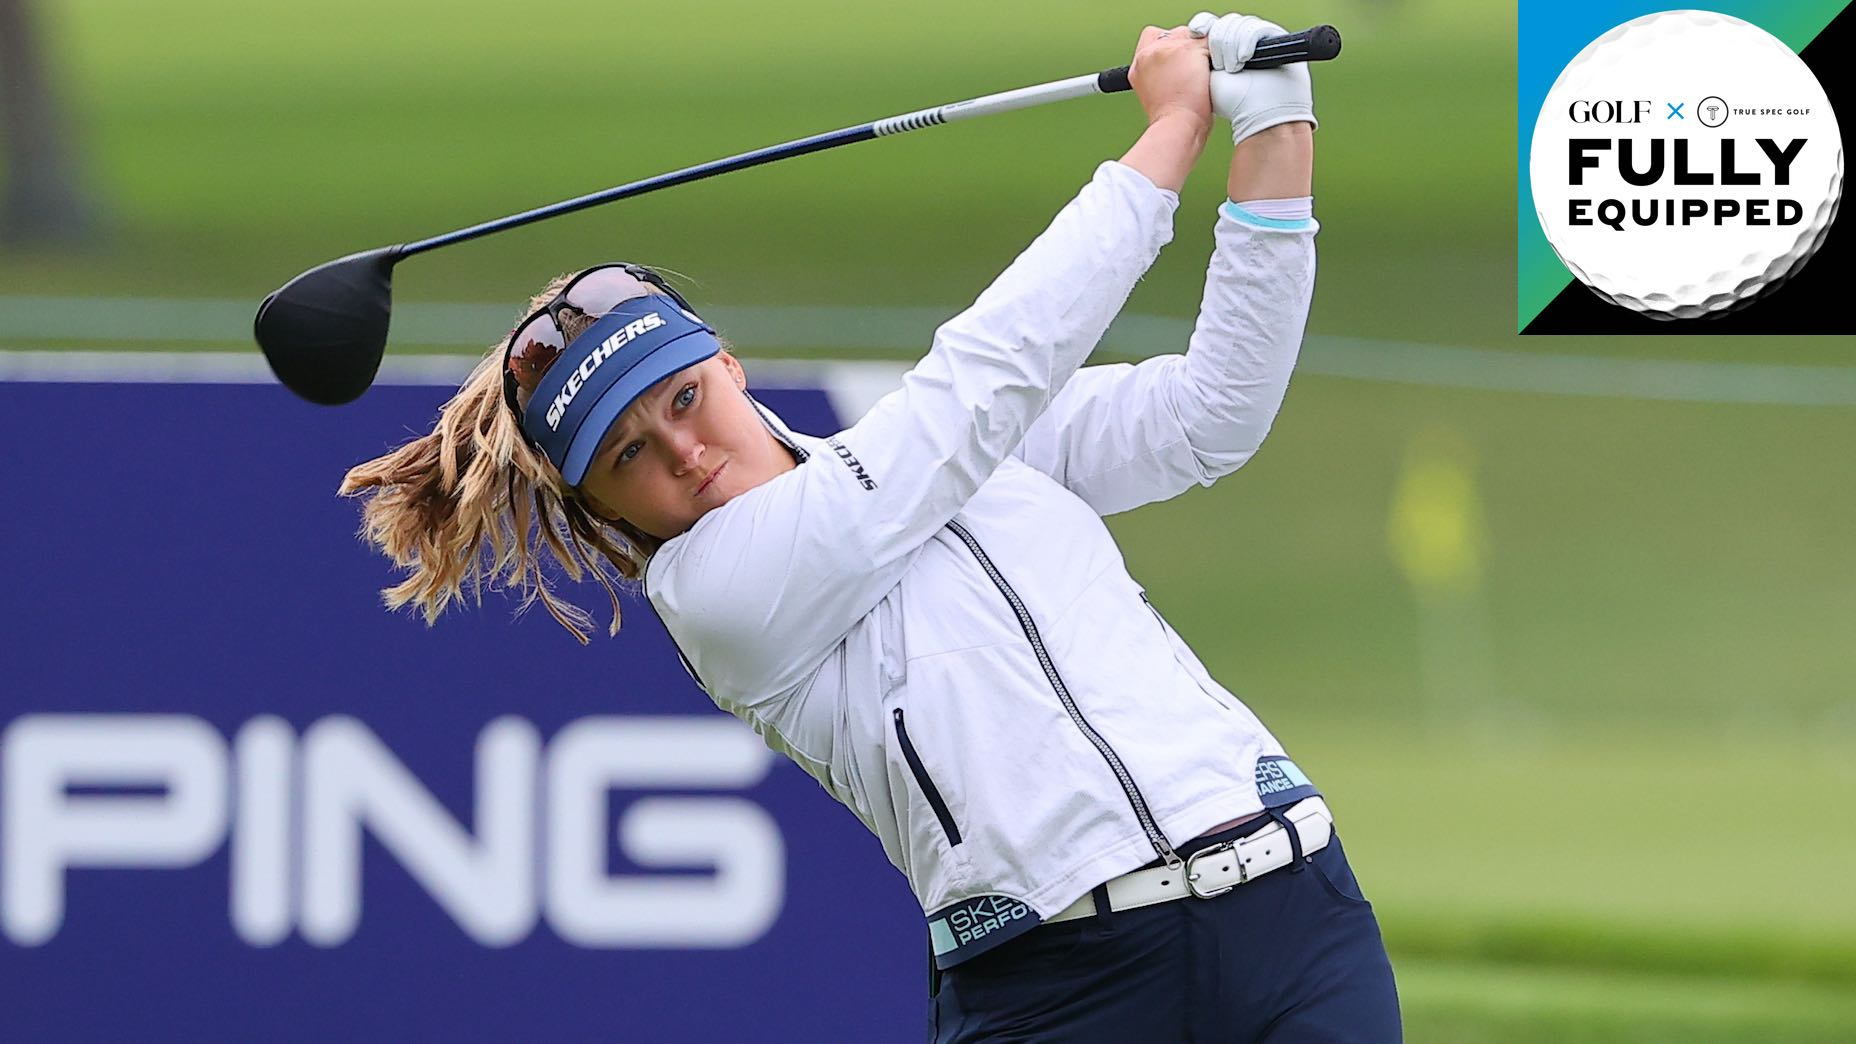 brooke henderson tees off with a 48-inch Ping driver at the Founders Cup